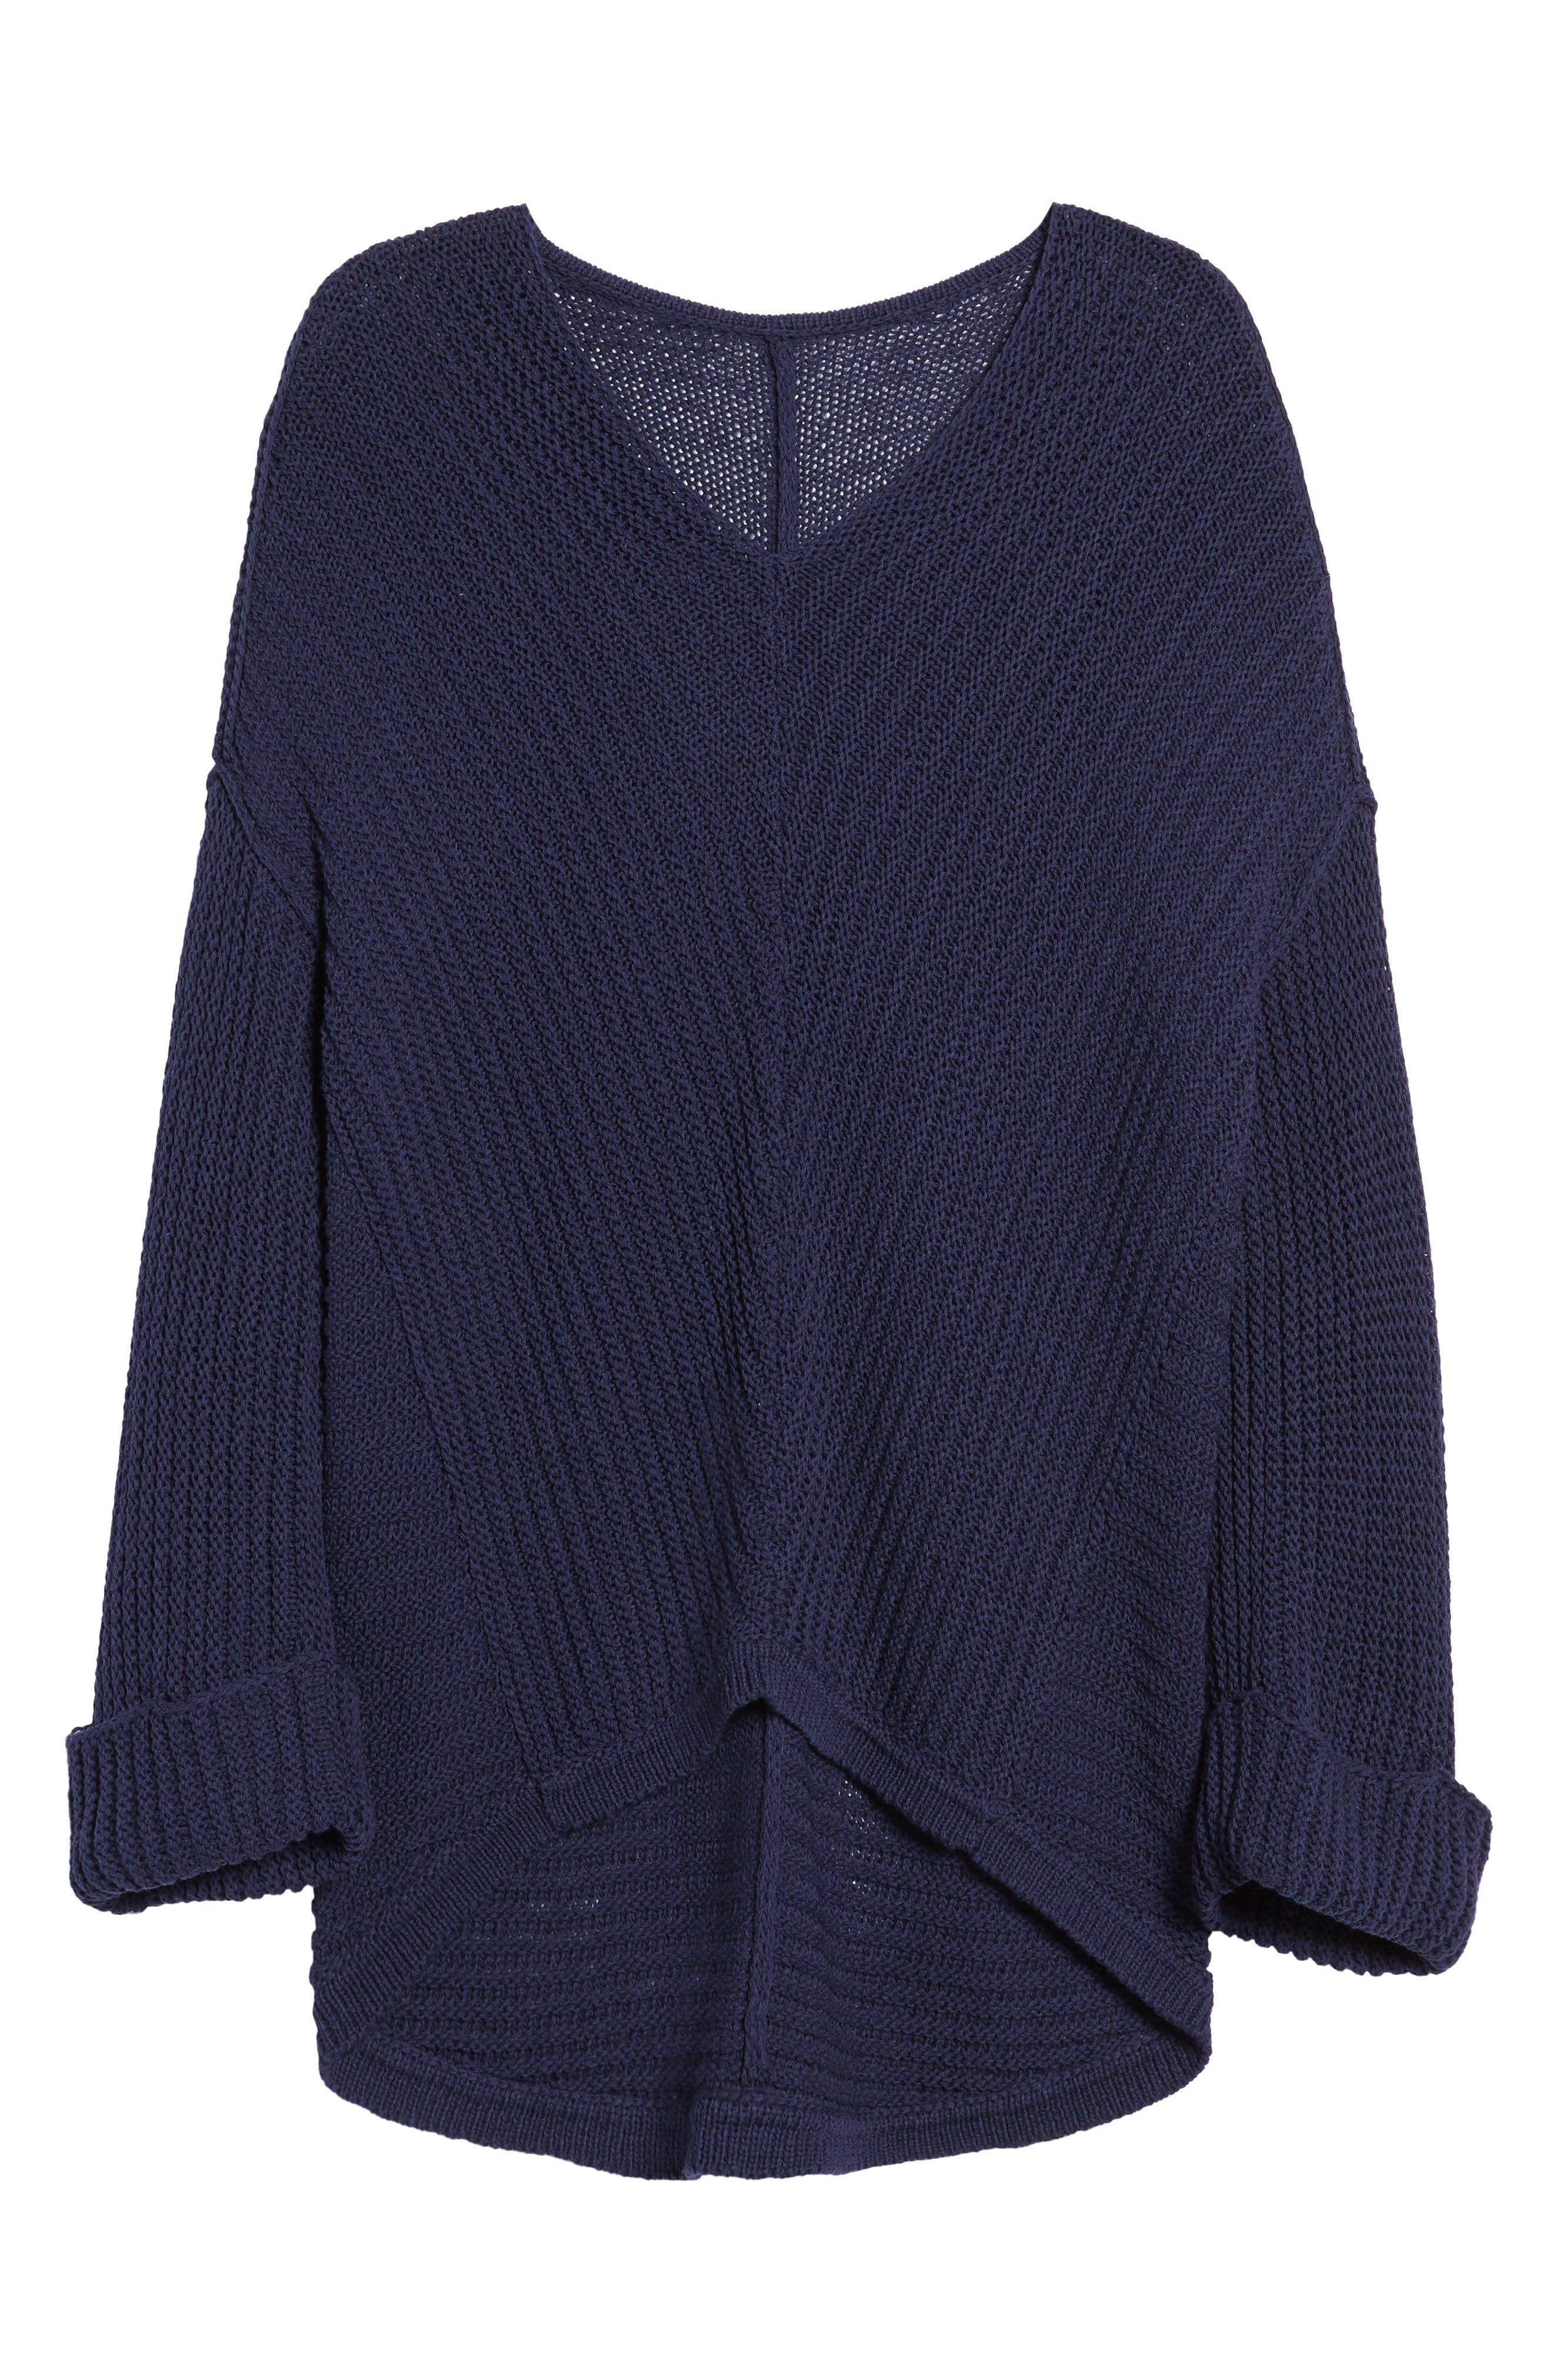 Cuffed Sleeve Sweater,                             Alternate thumbnail 21, color,